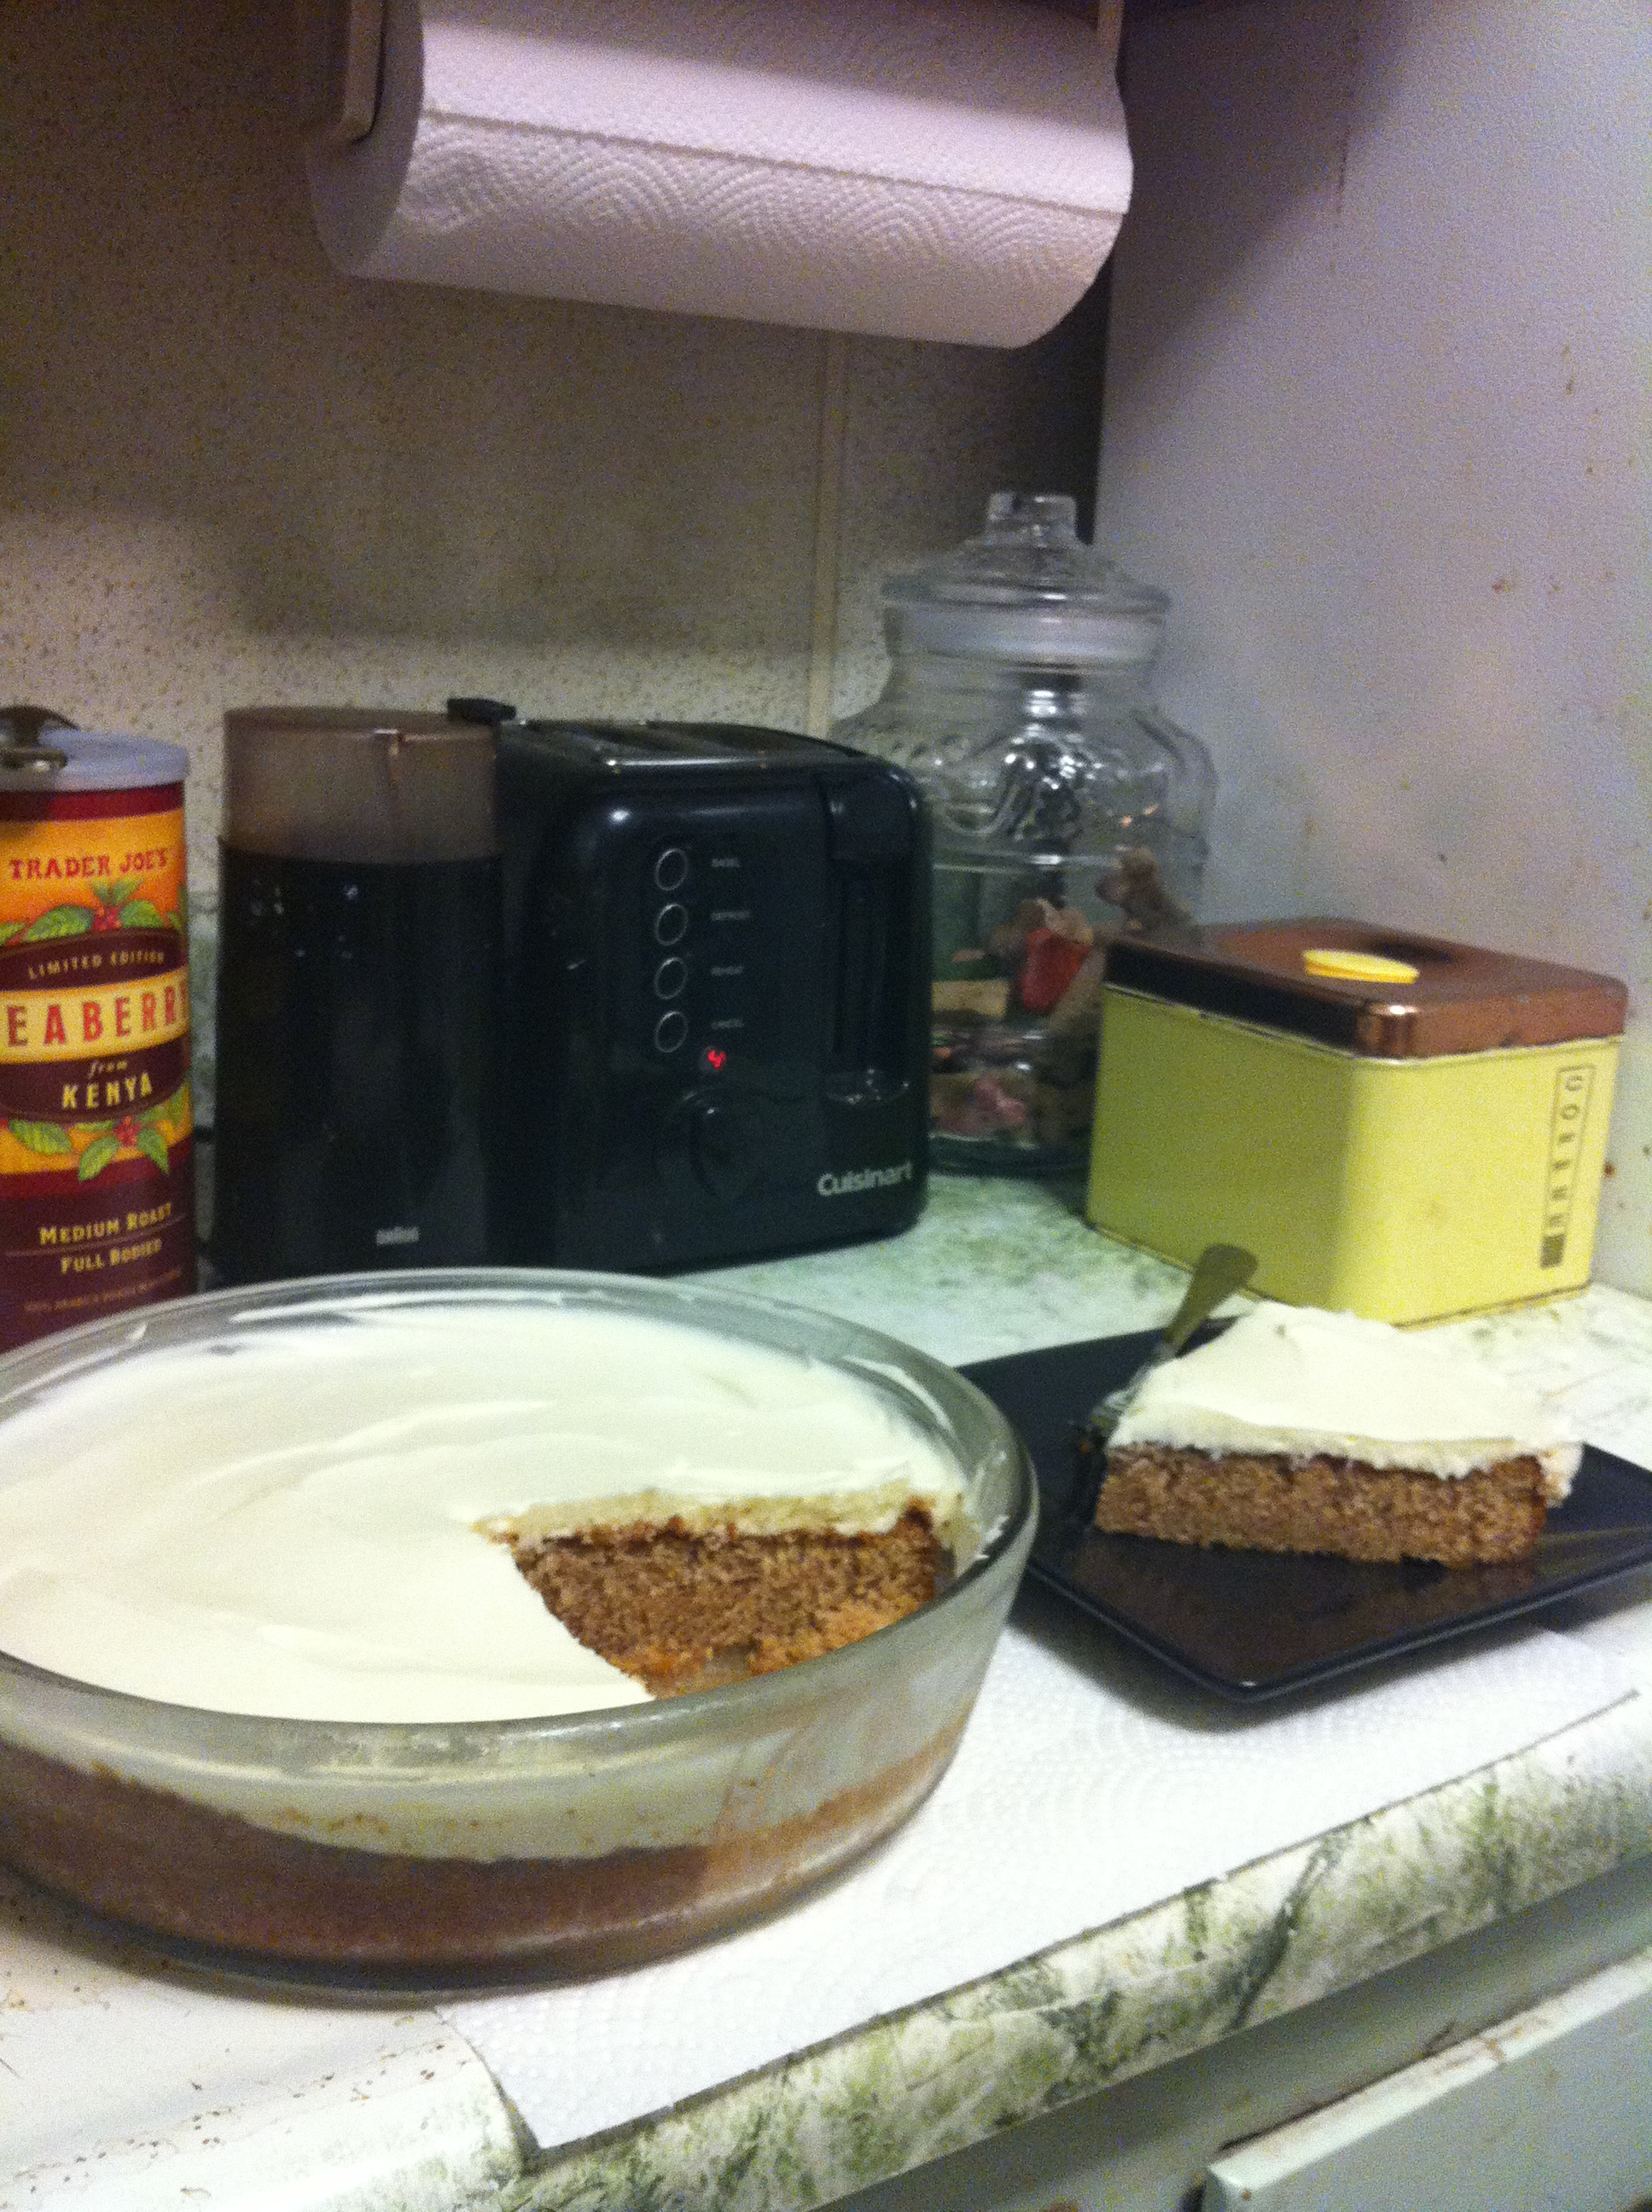 Brookline :: Spice cake with Sailor Jerry's cream cheese frosting, make by Kelley! Mmmmmmm.